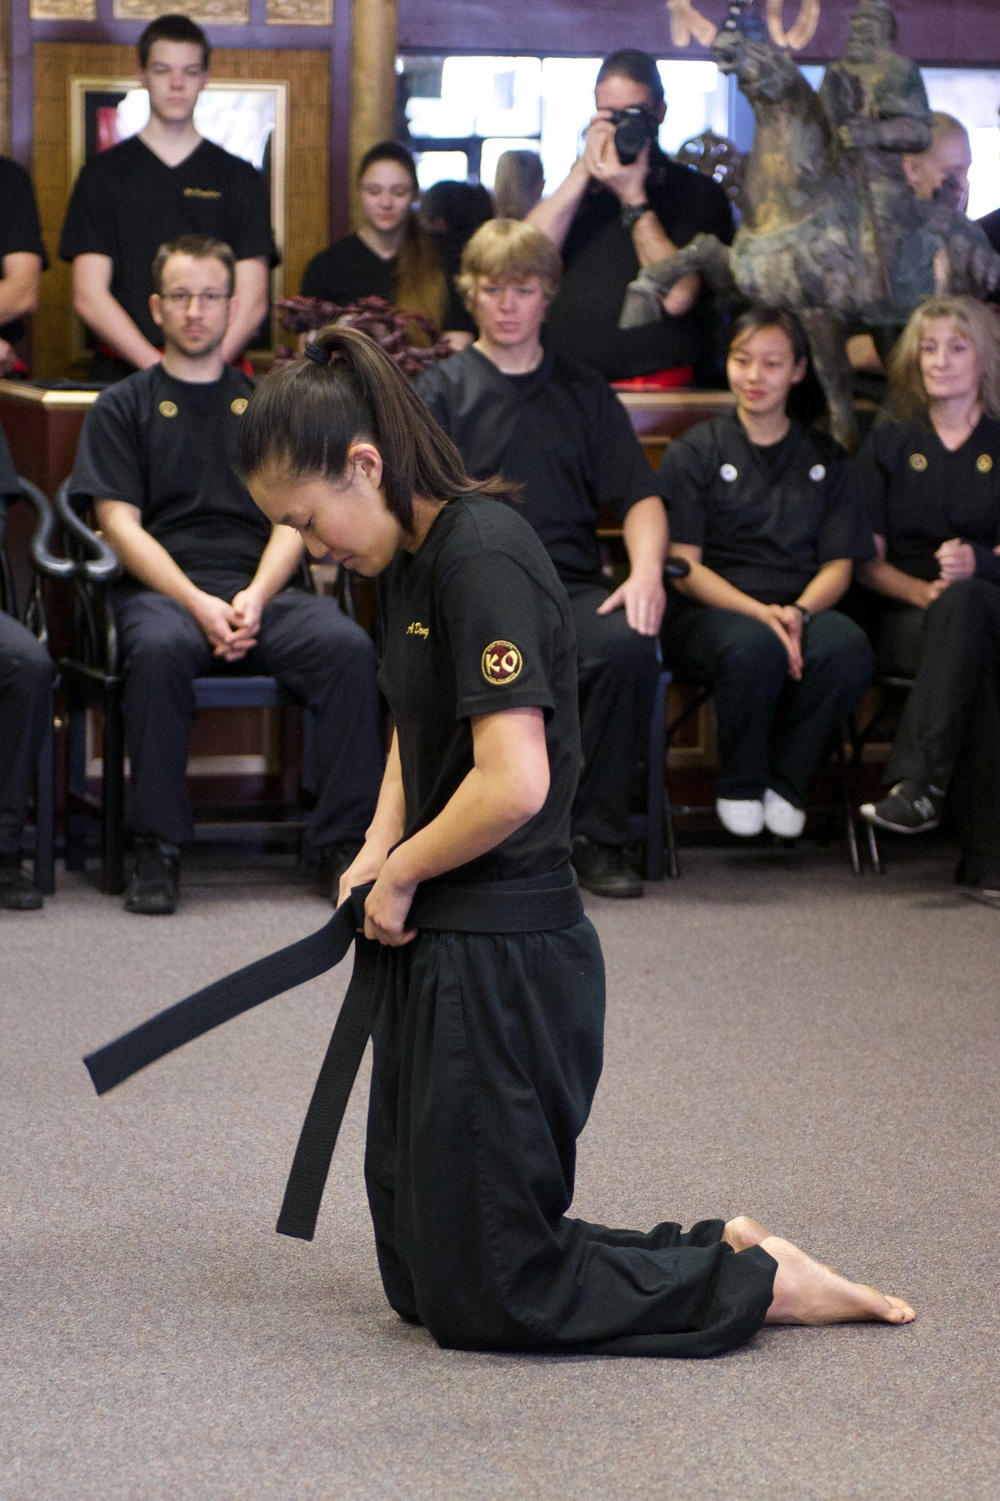 2013-12-22_AD Black Belt-097.jpg